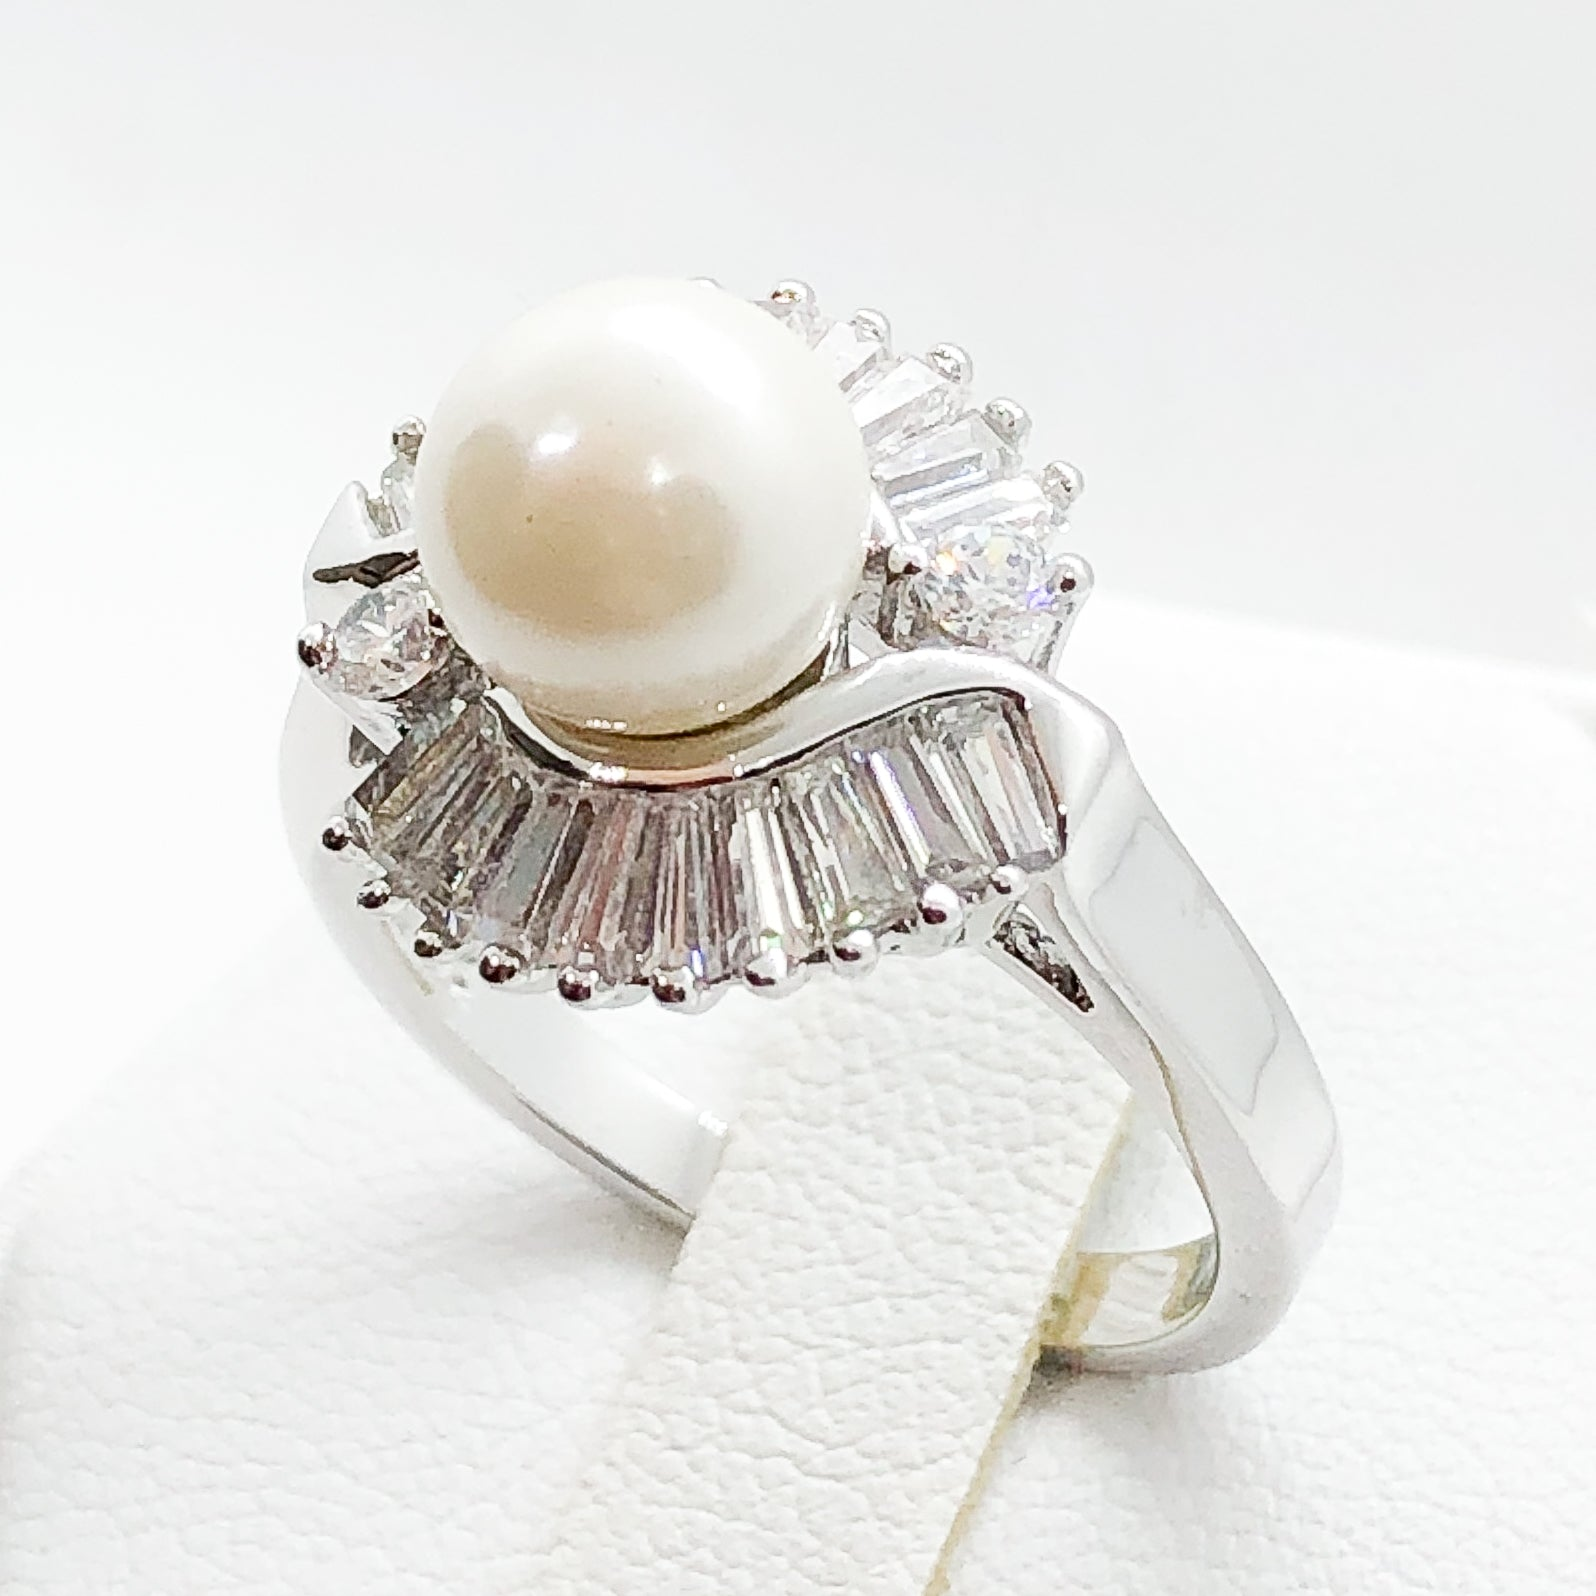 ID:R0529 Women Vintage Jewelry 18K White Gold GF First-Class Fresh Pearl Ring With Diamonique Accent Anniversary Birthday Gift